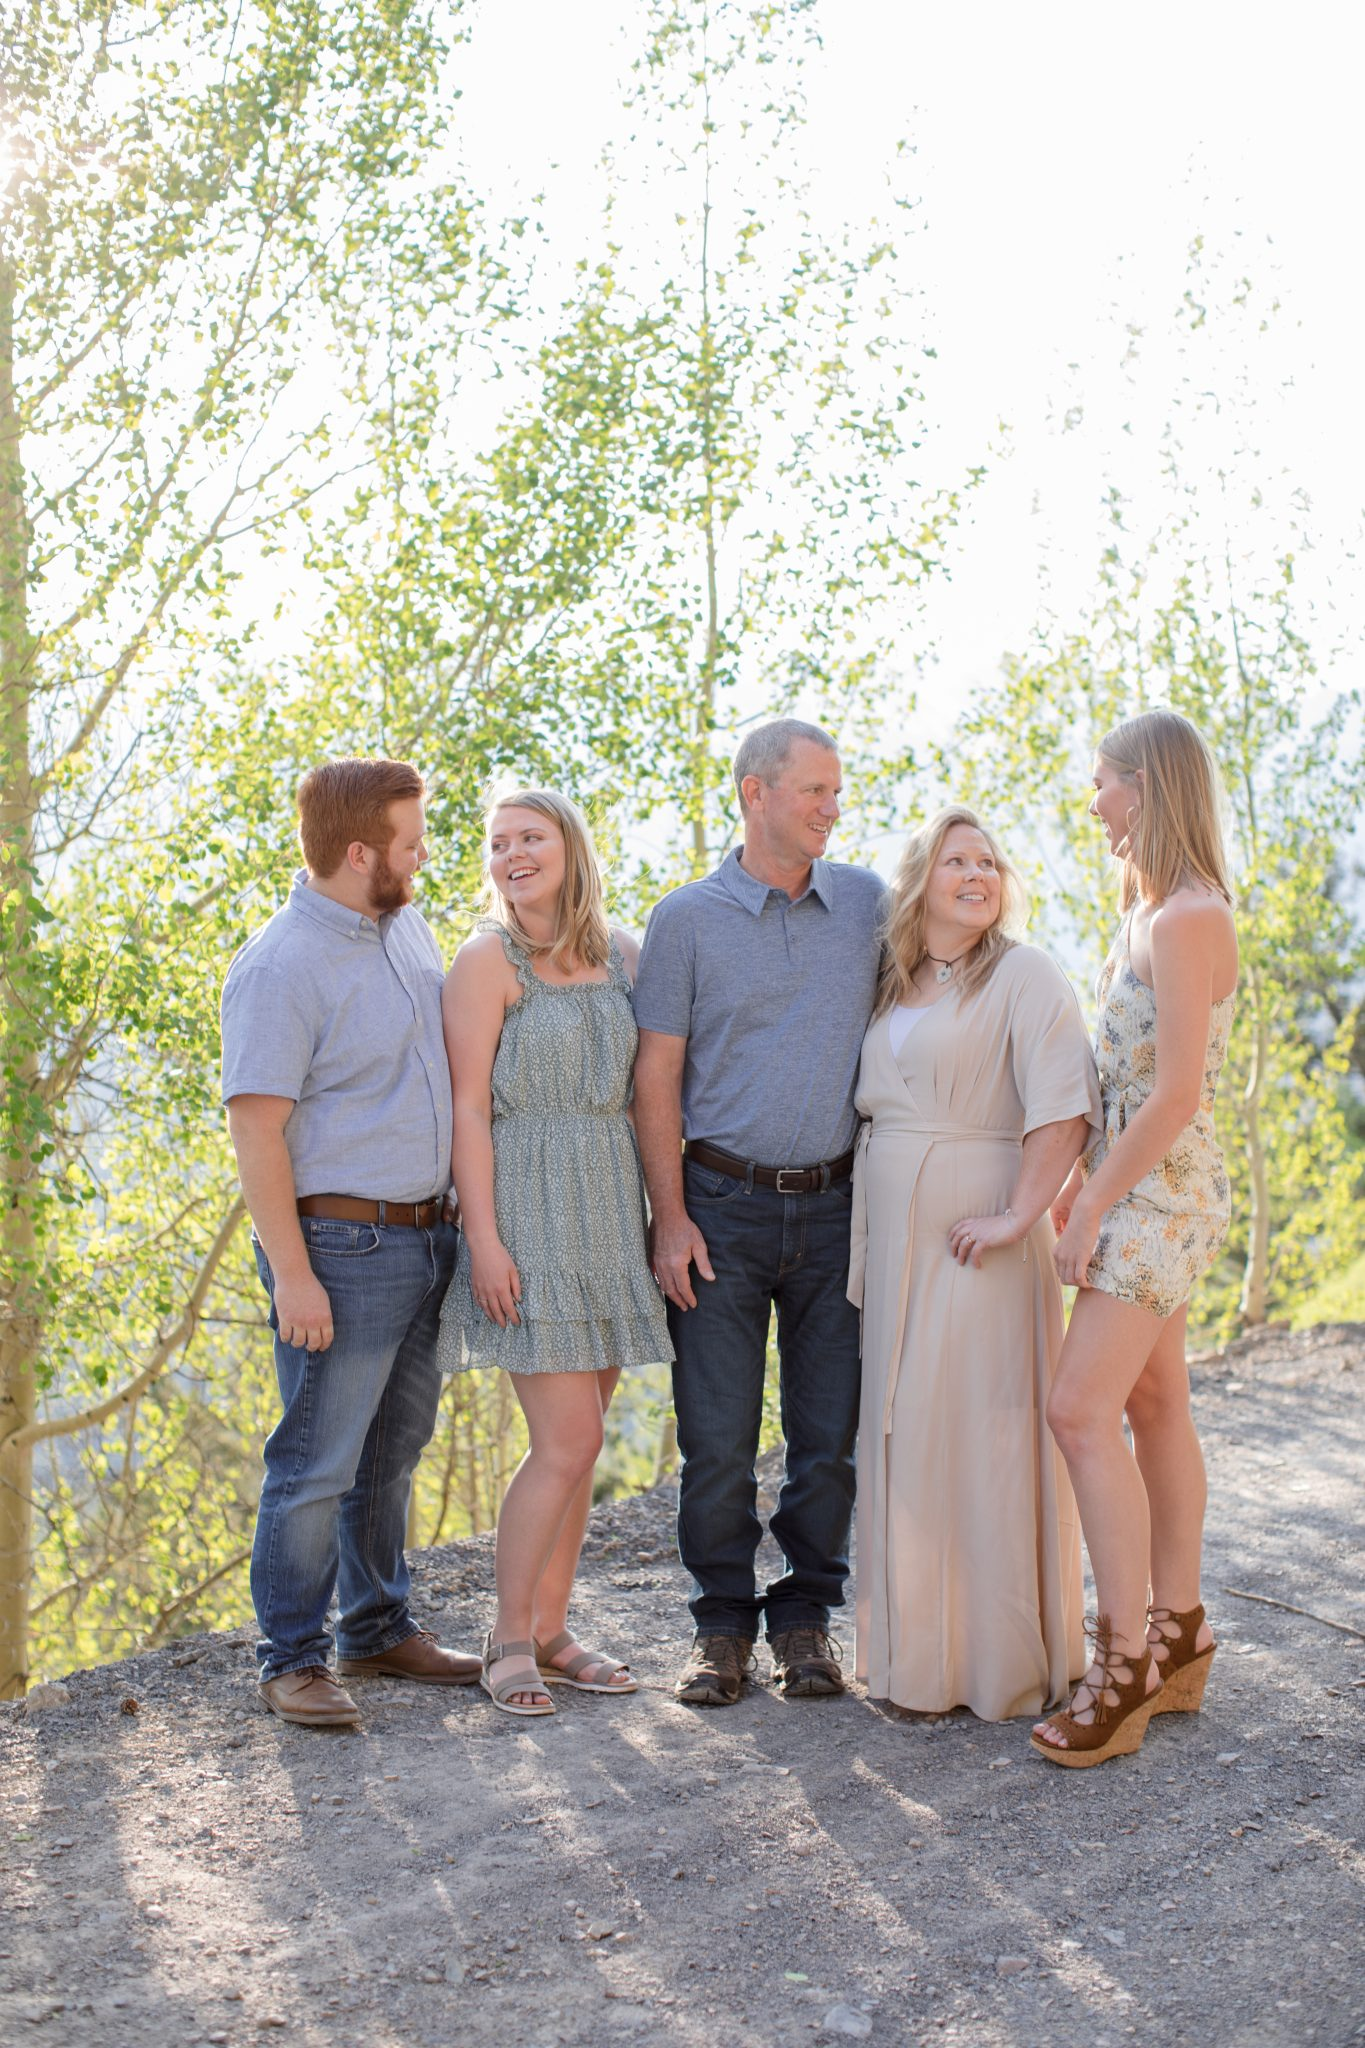 Summer family portrait session in Breckenridge